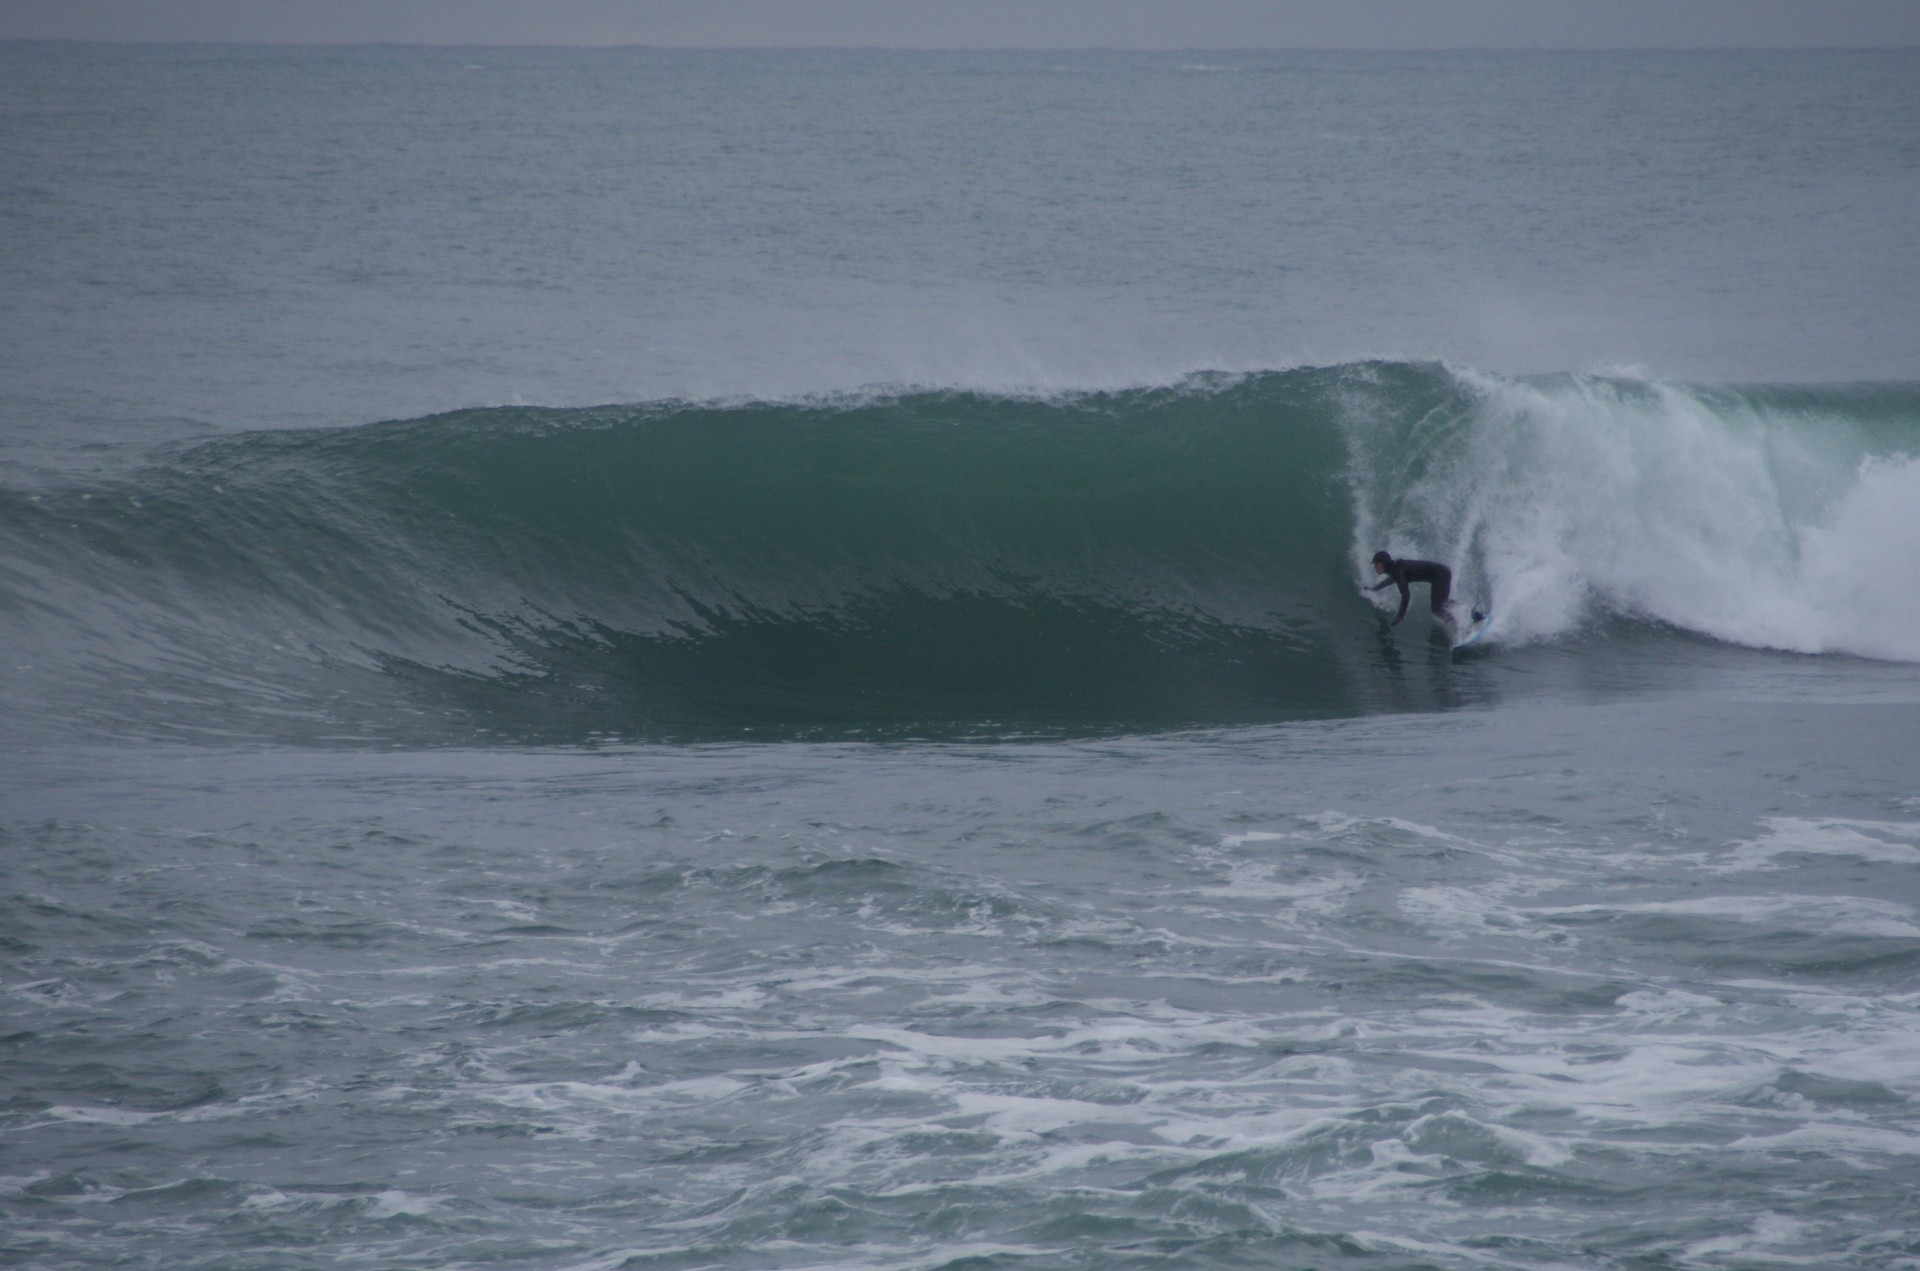 lee 's photo of Porthleven